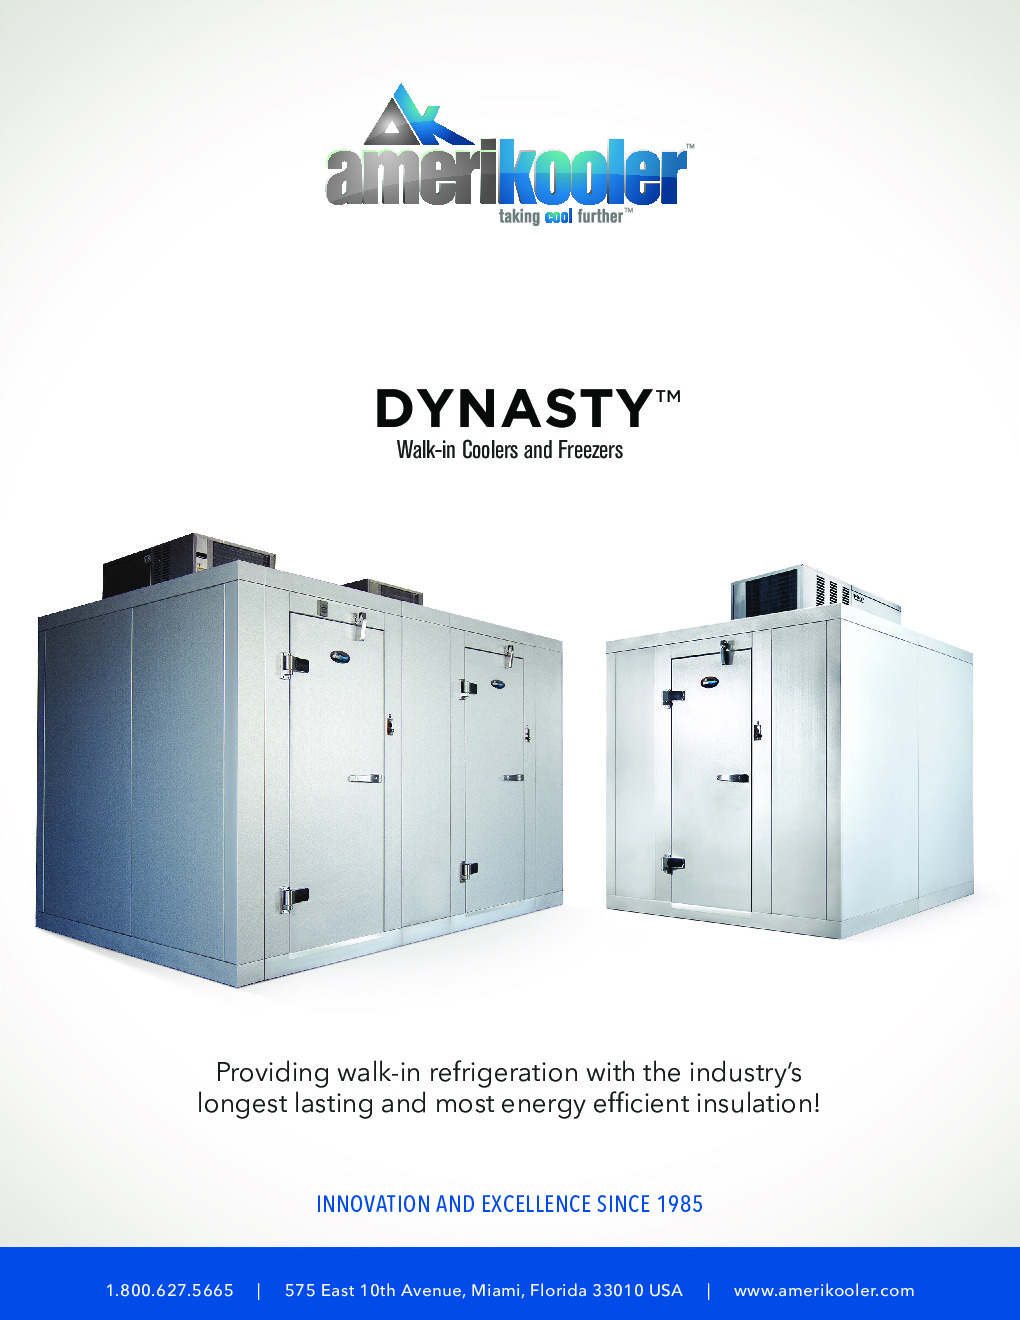 AmeriKooler DW101277N-6/6-RM 10' X 12' Walk-In Cooler, 6' L Cooler without Floor and 6' L Freezer, Remote